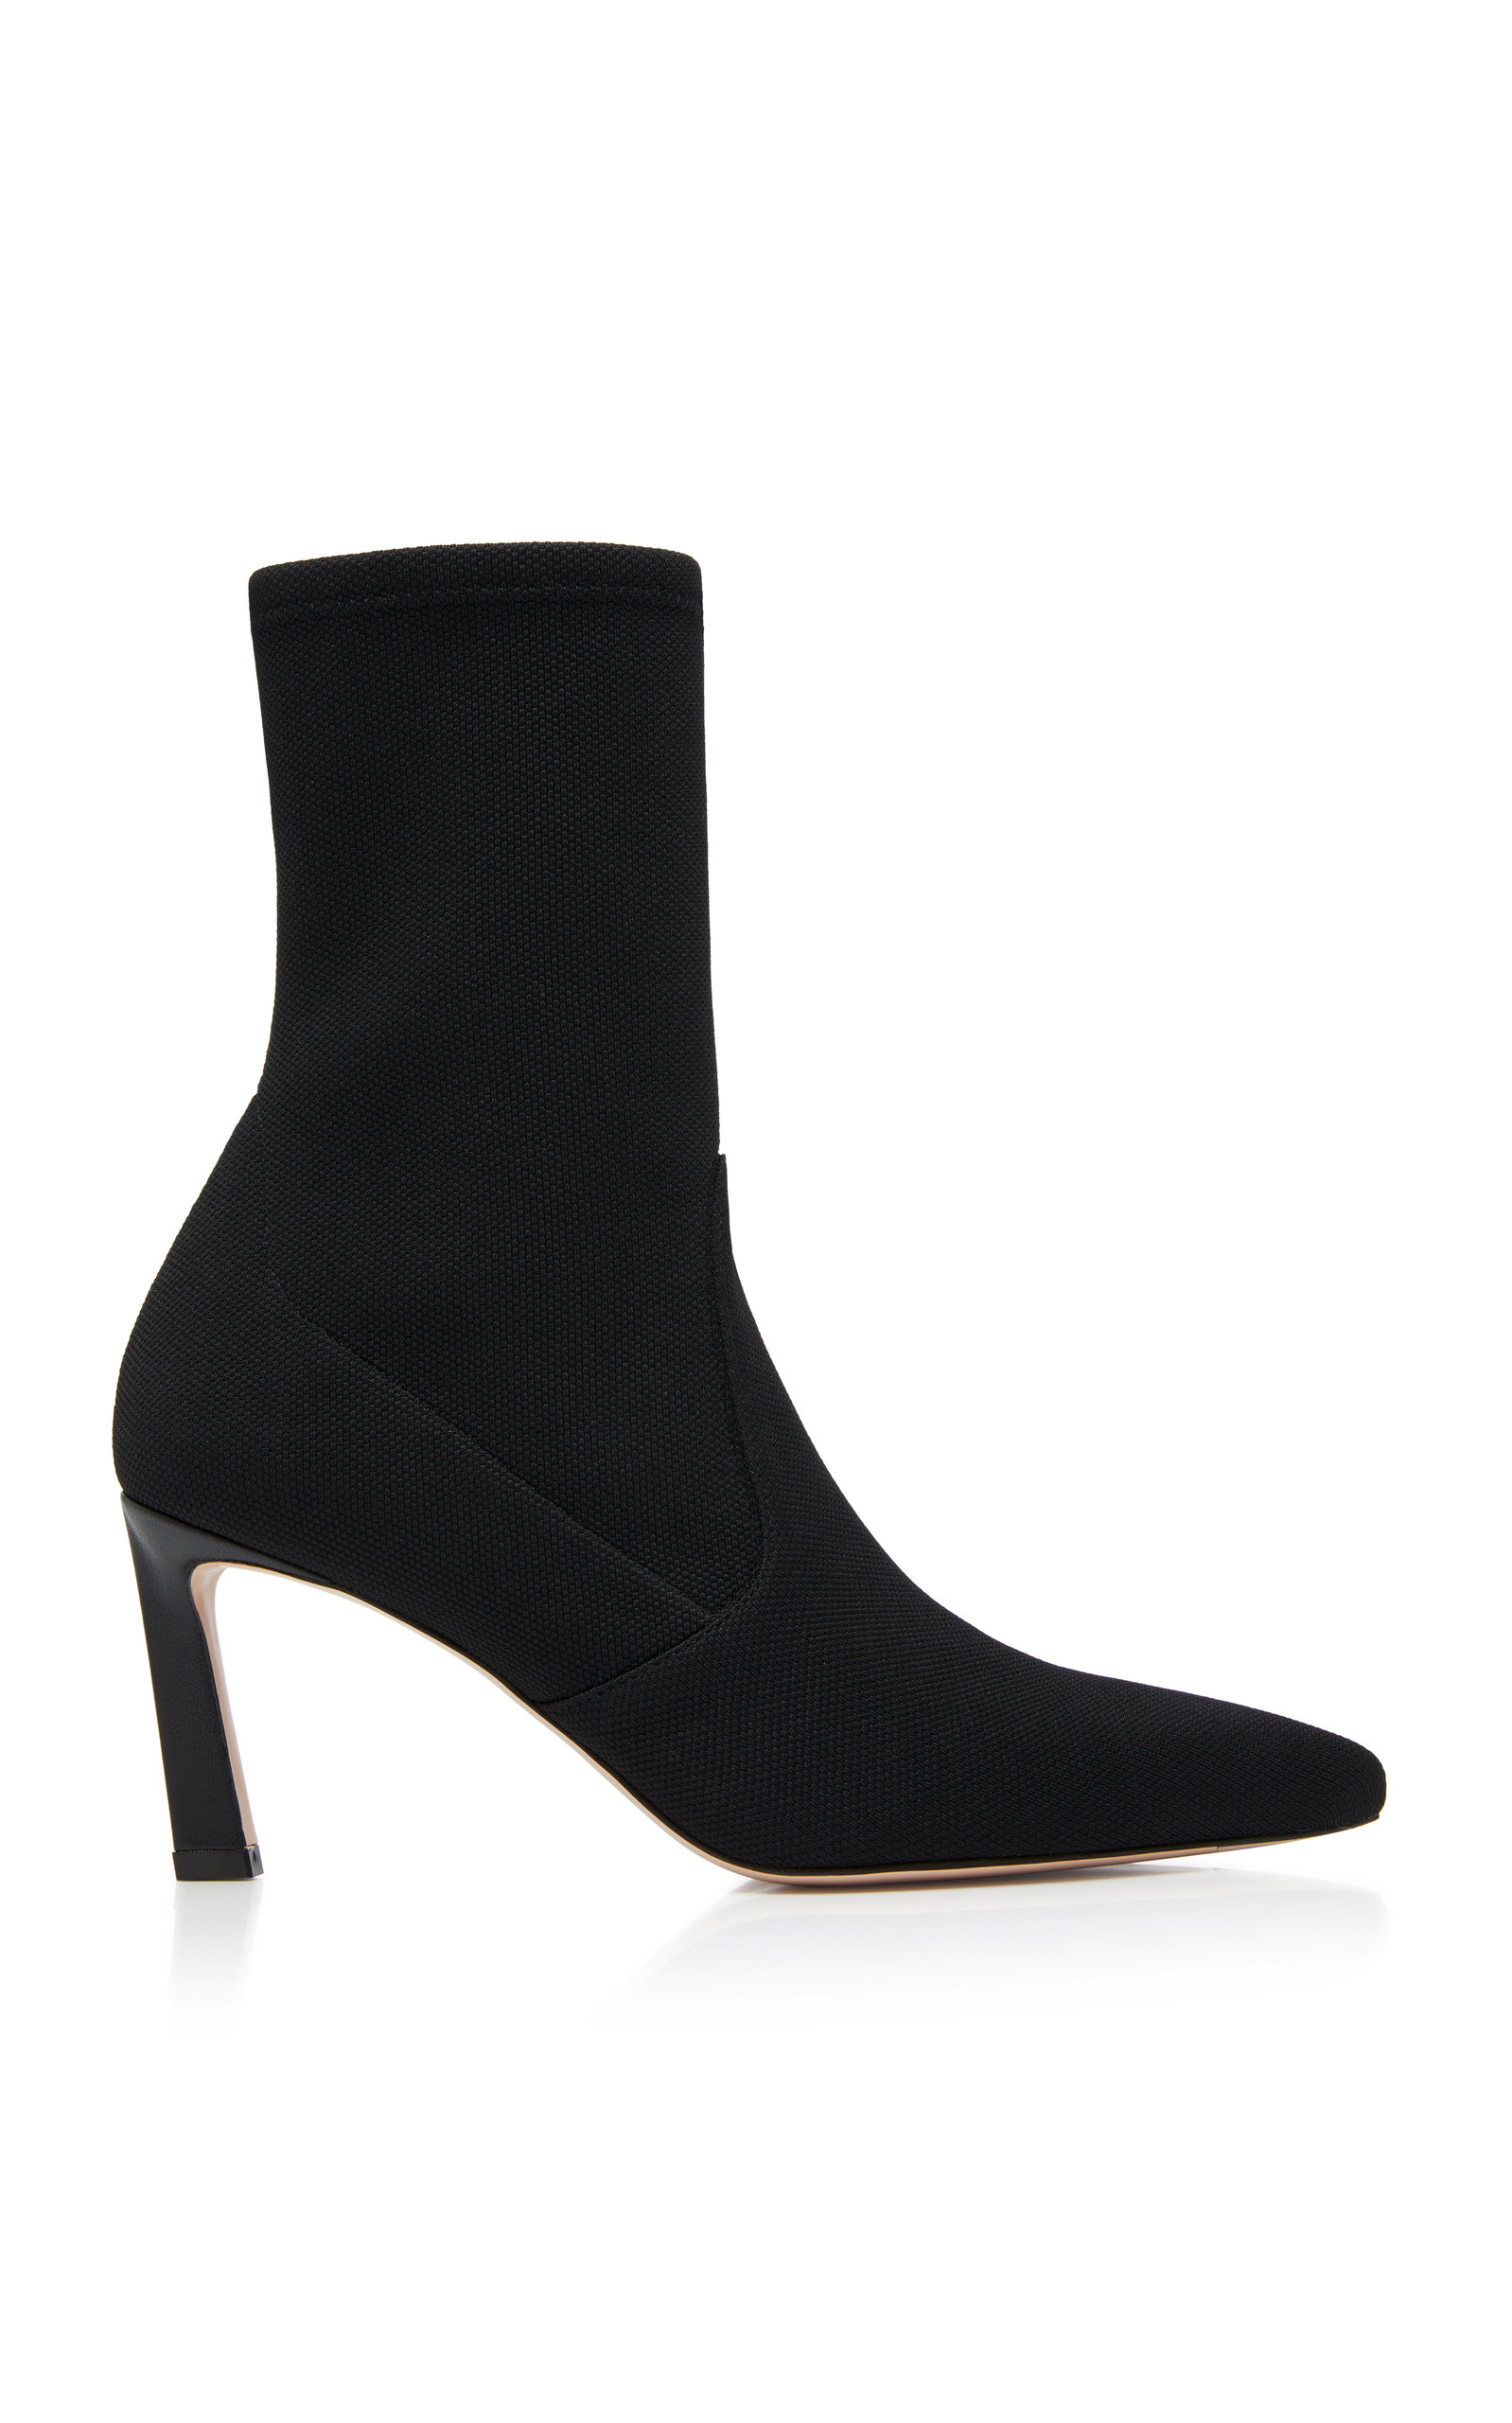 Rapture Stretch-Knit Ankle Boots in Black from STUART WEITZMAN